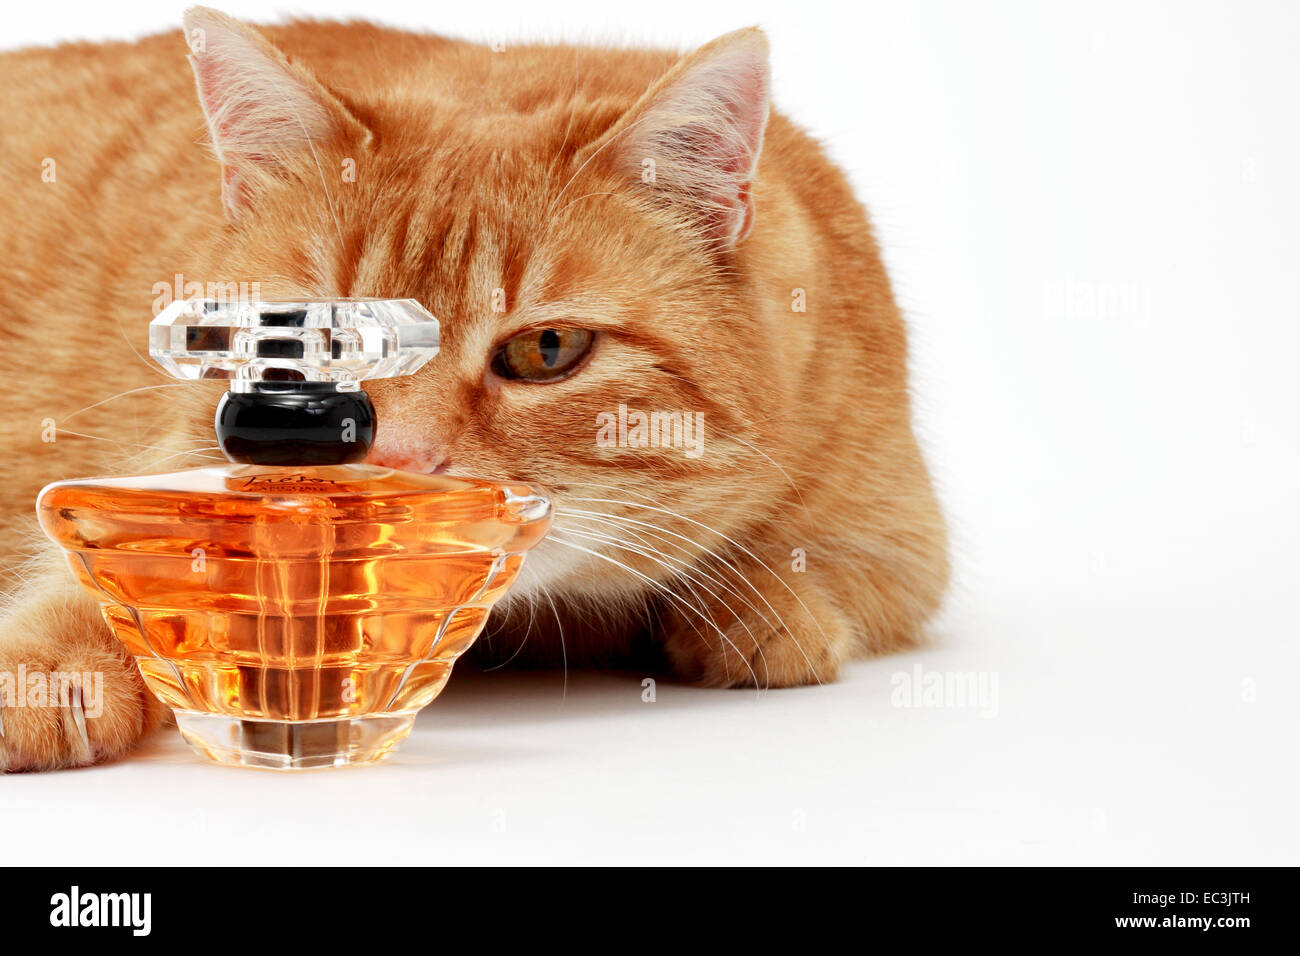 Cat with Flacon - Stock Image